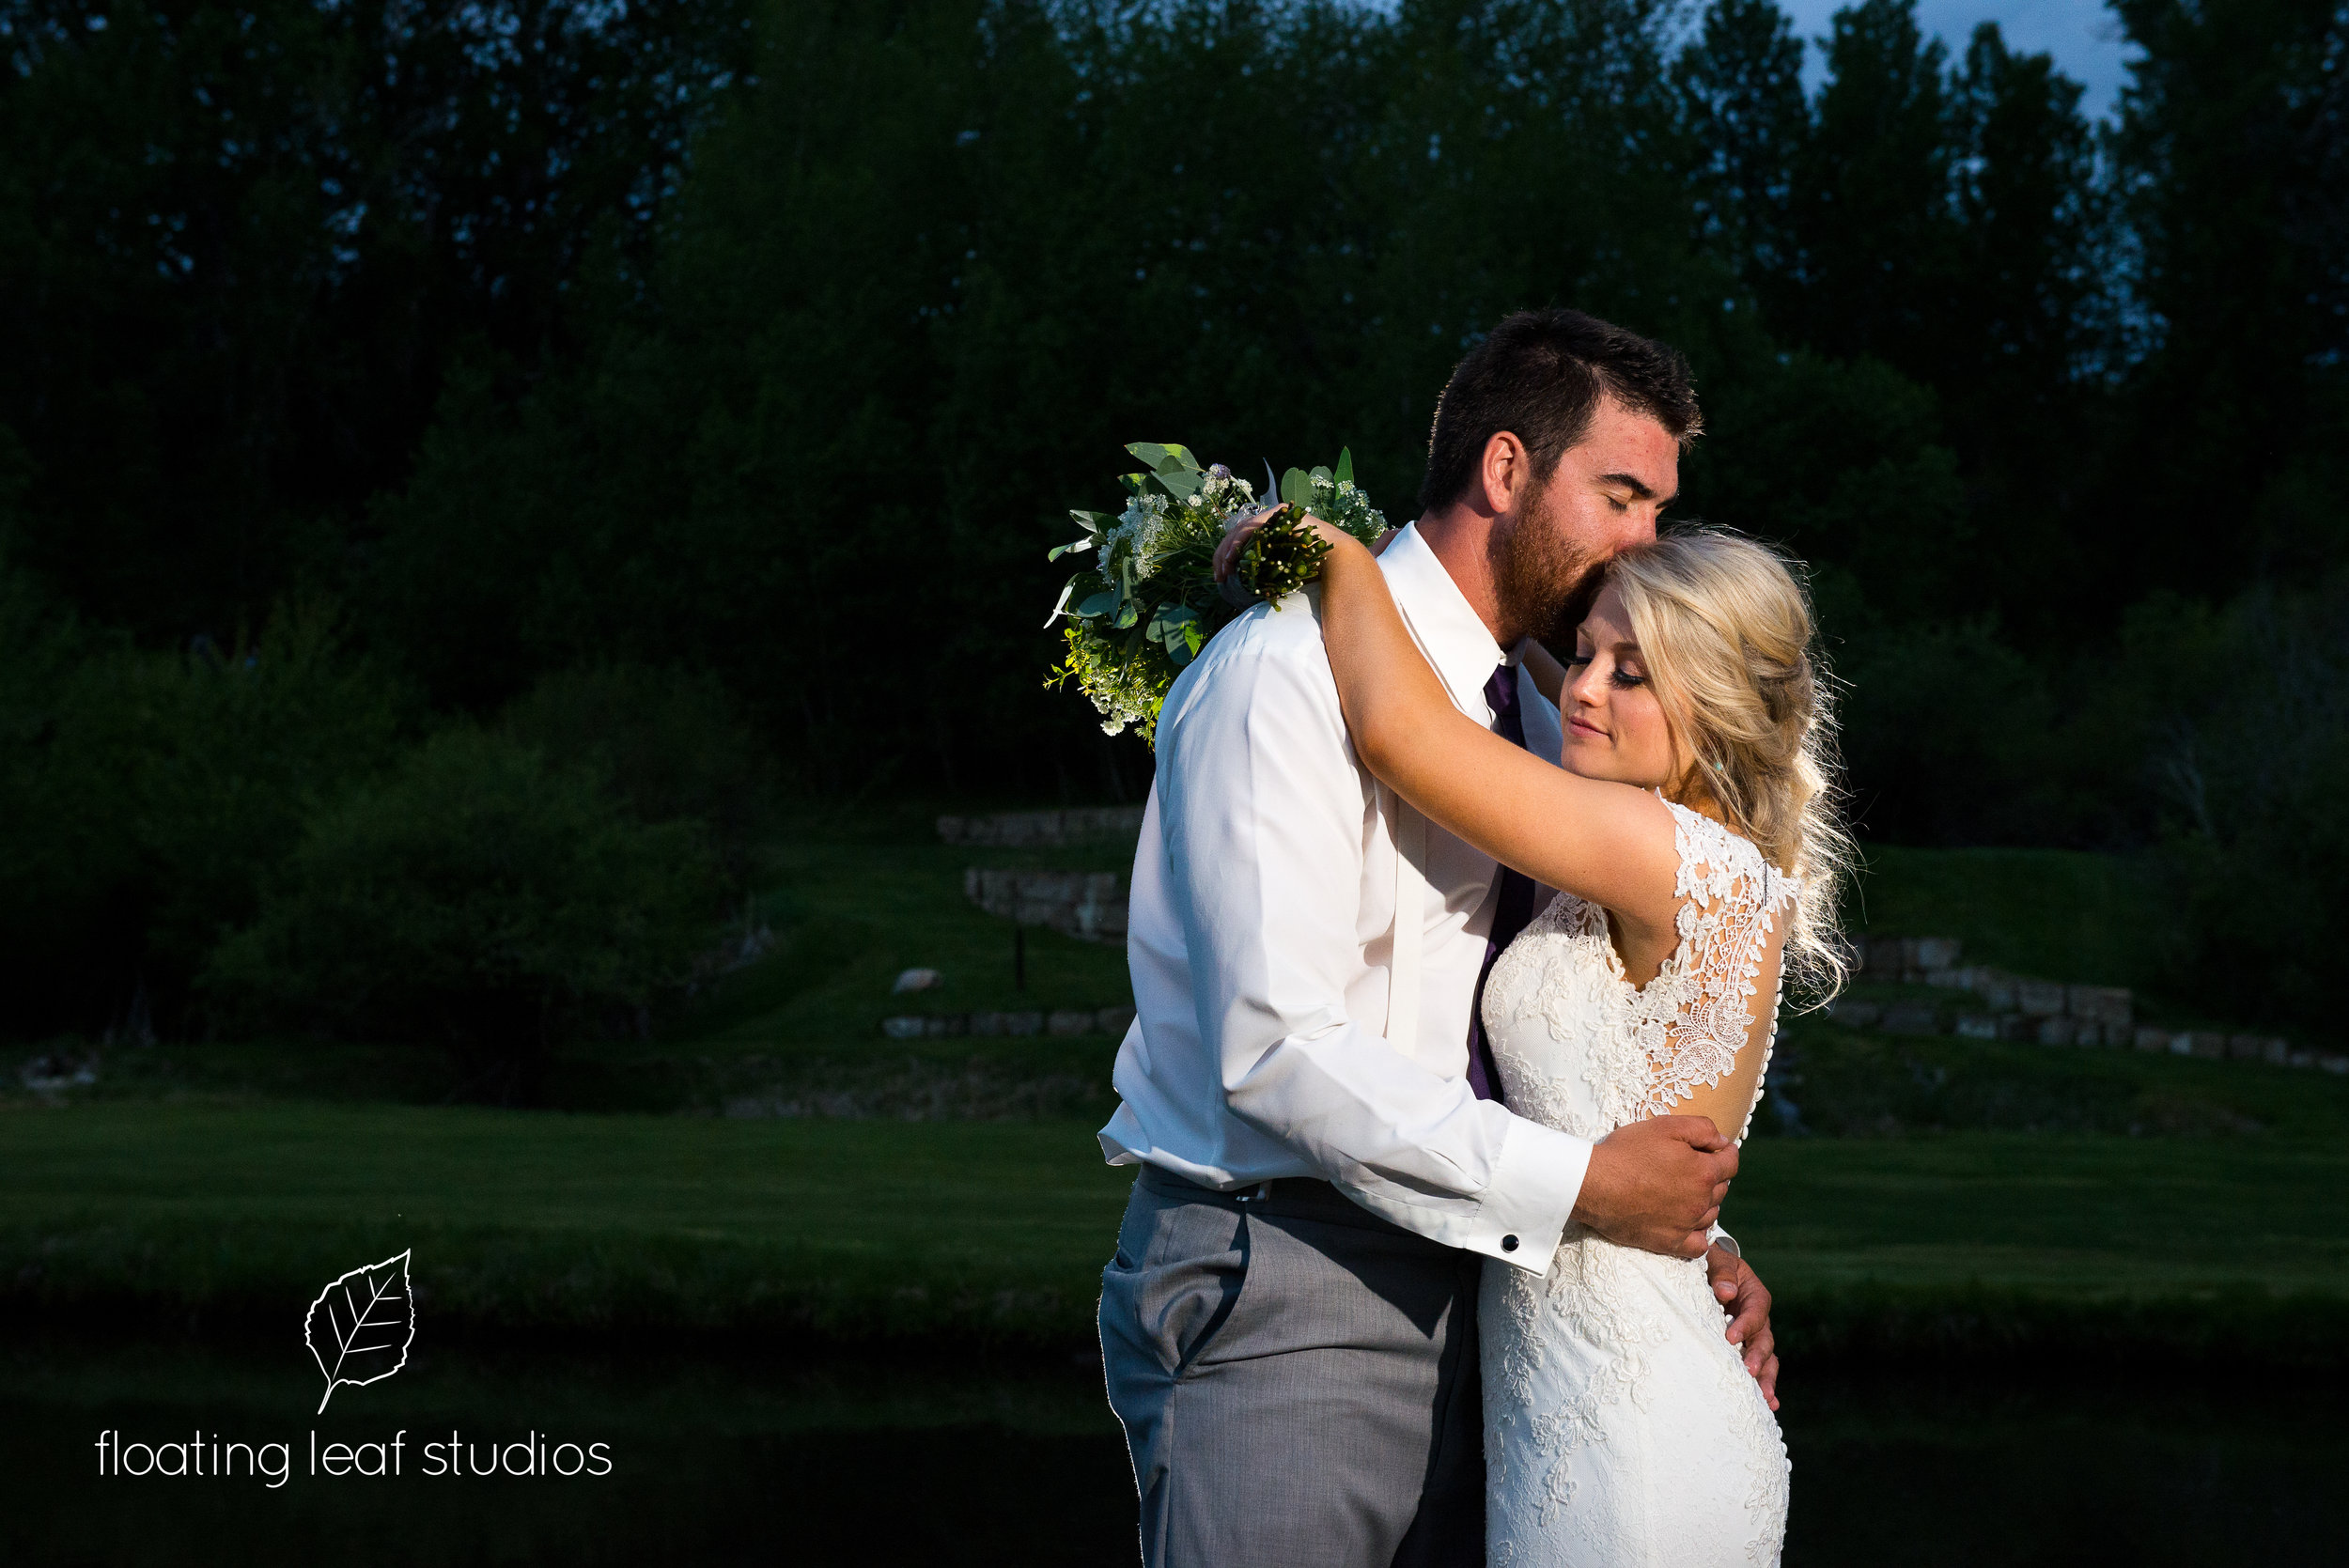 RockCreekFloral-Condon Wedding-61.jpg